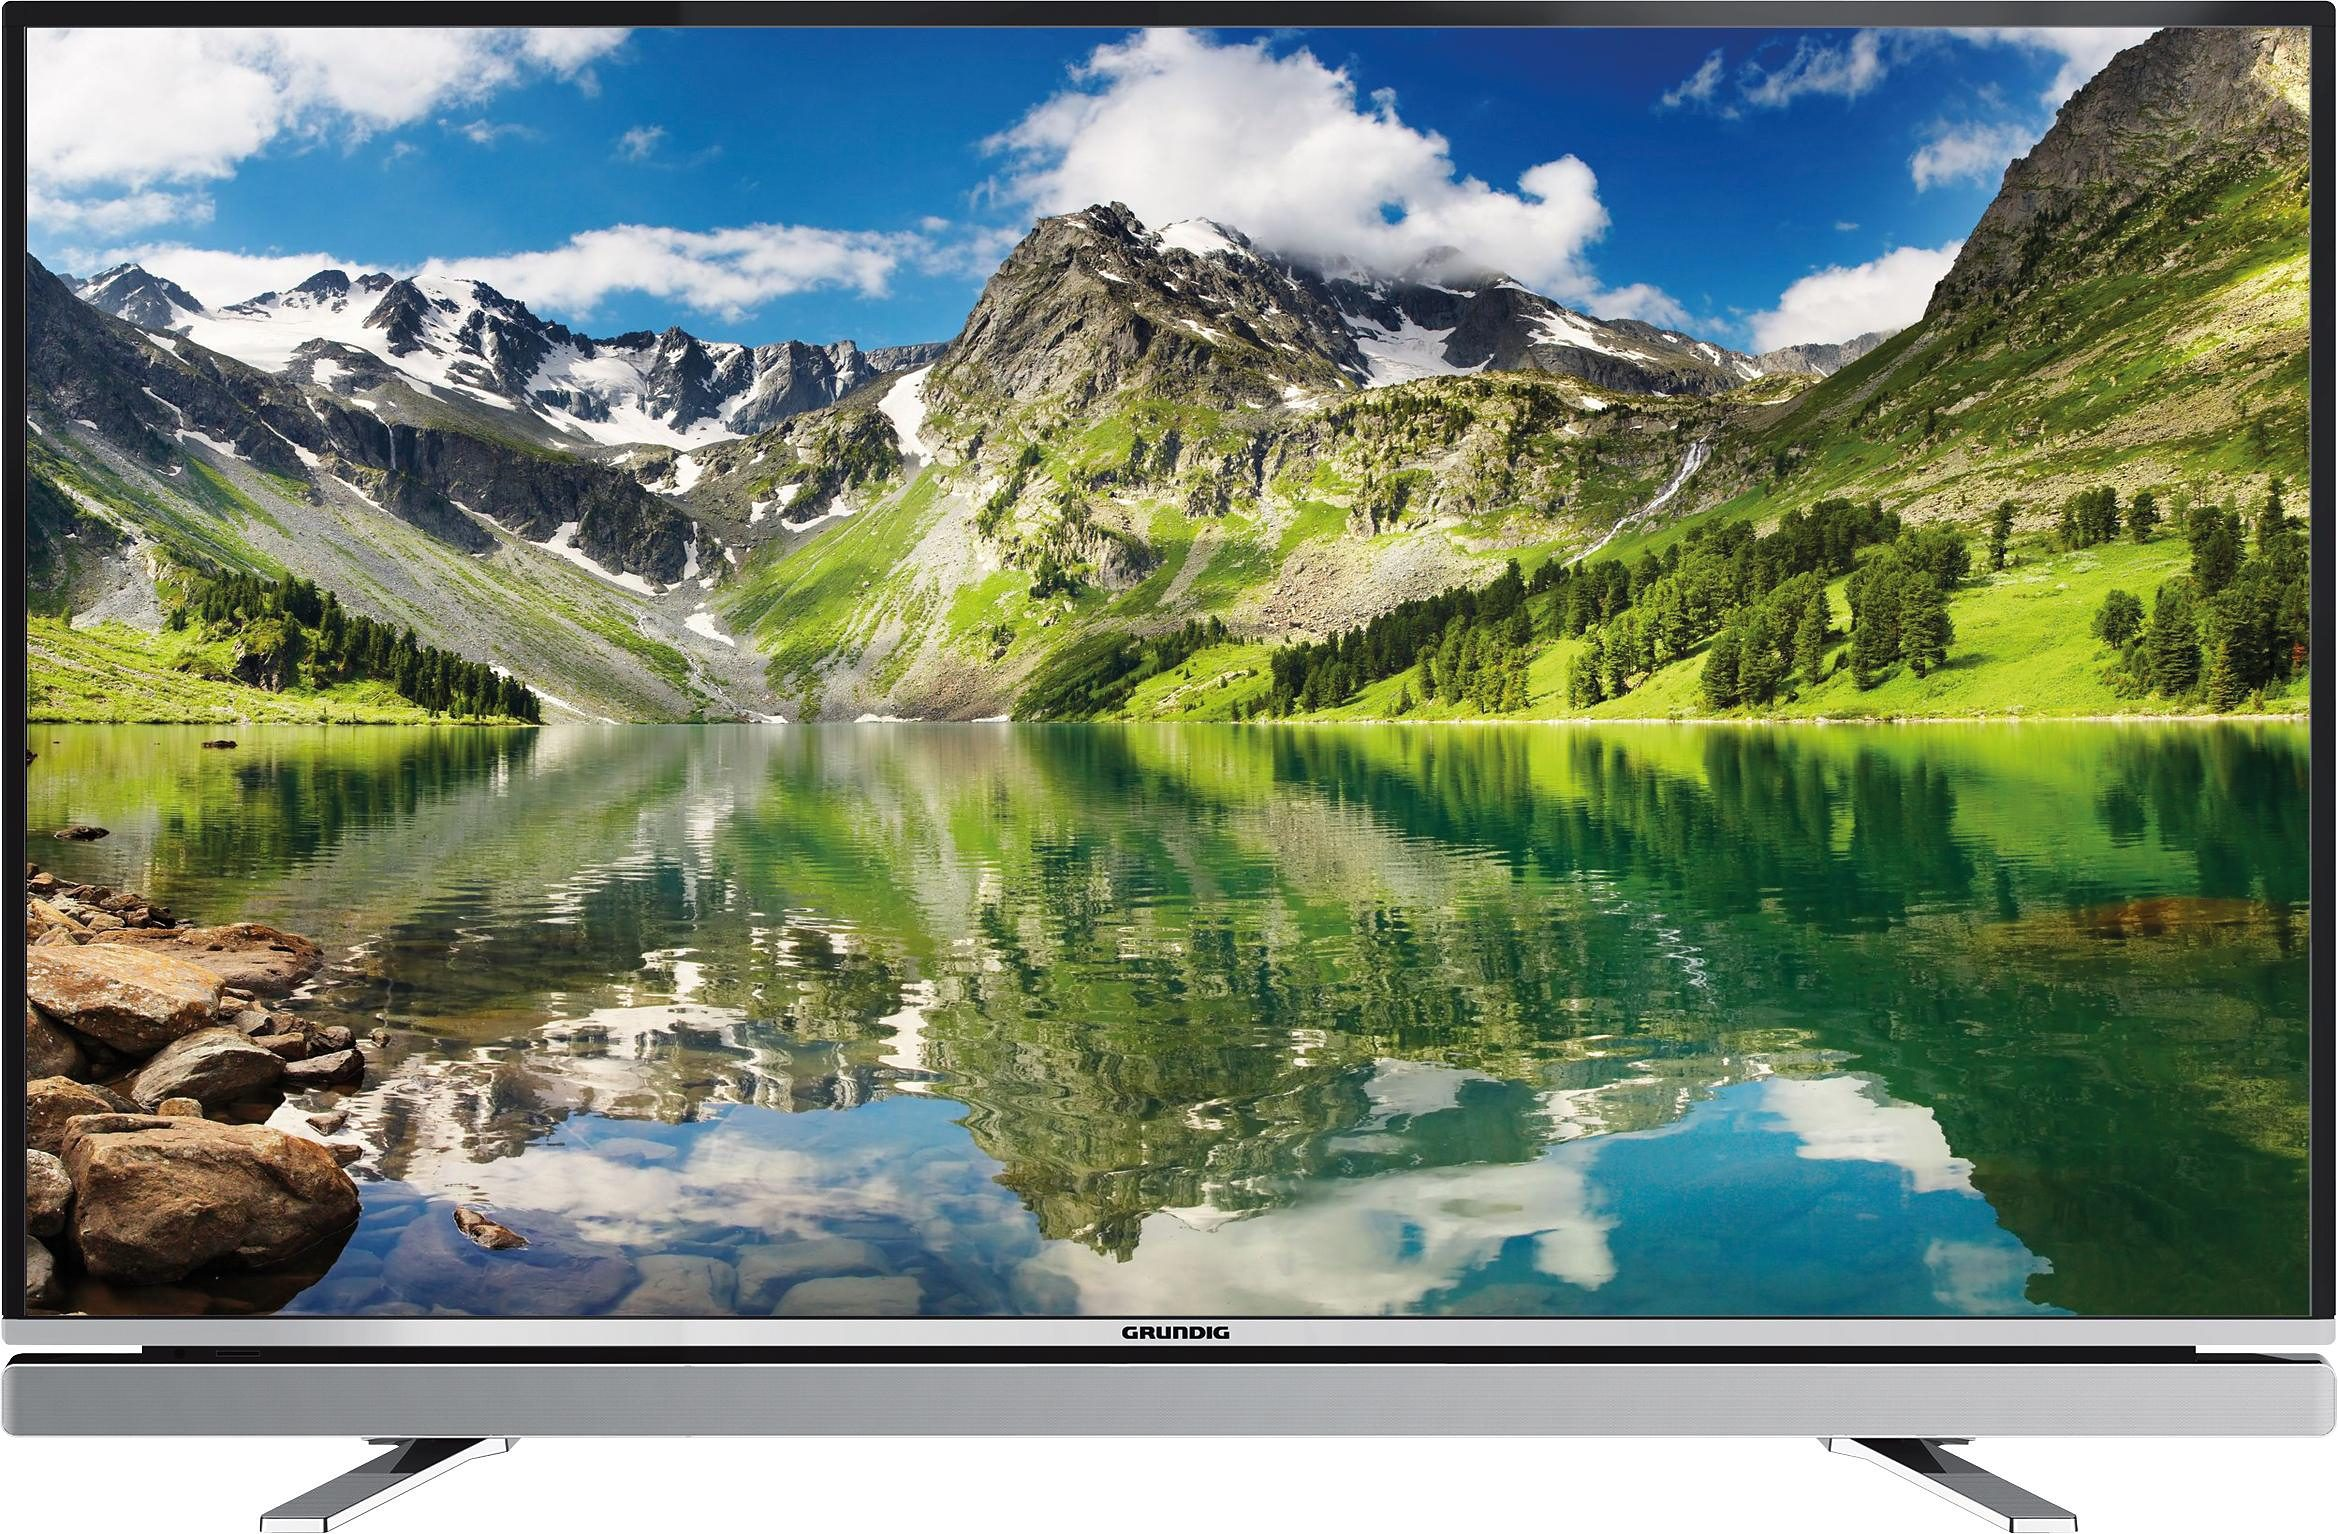 Grundig 49GFB6623 LED-Fernseher (123 cm/49 Zoll, Full HD, Smart-TV, 36 Monate Garantie) - Grundig